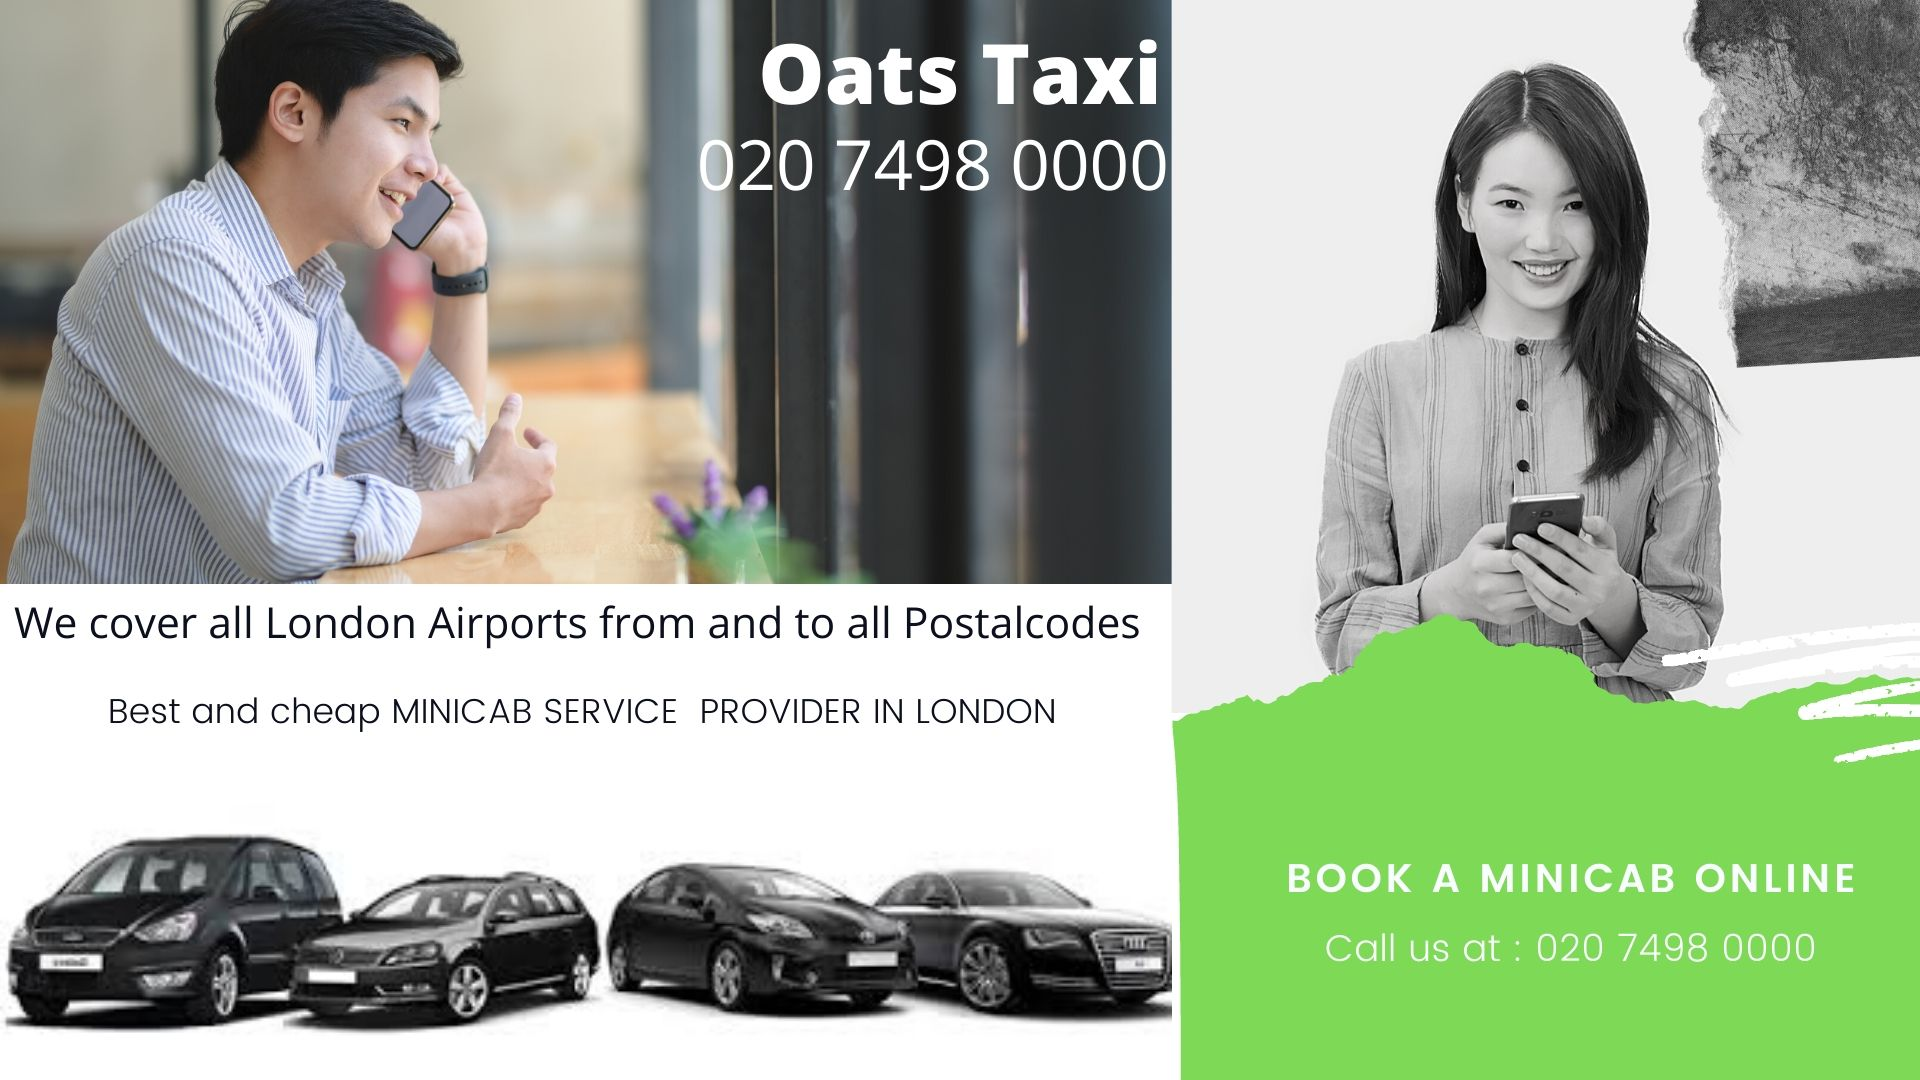 Nearest Taxi Office in Piccadilly Circus | Gatwick Airport | Call now : 02074980000